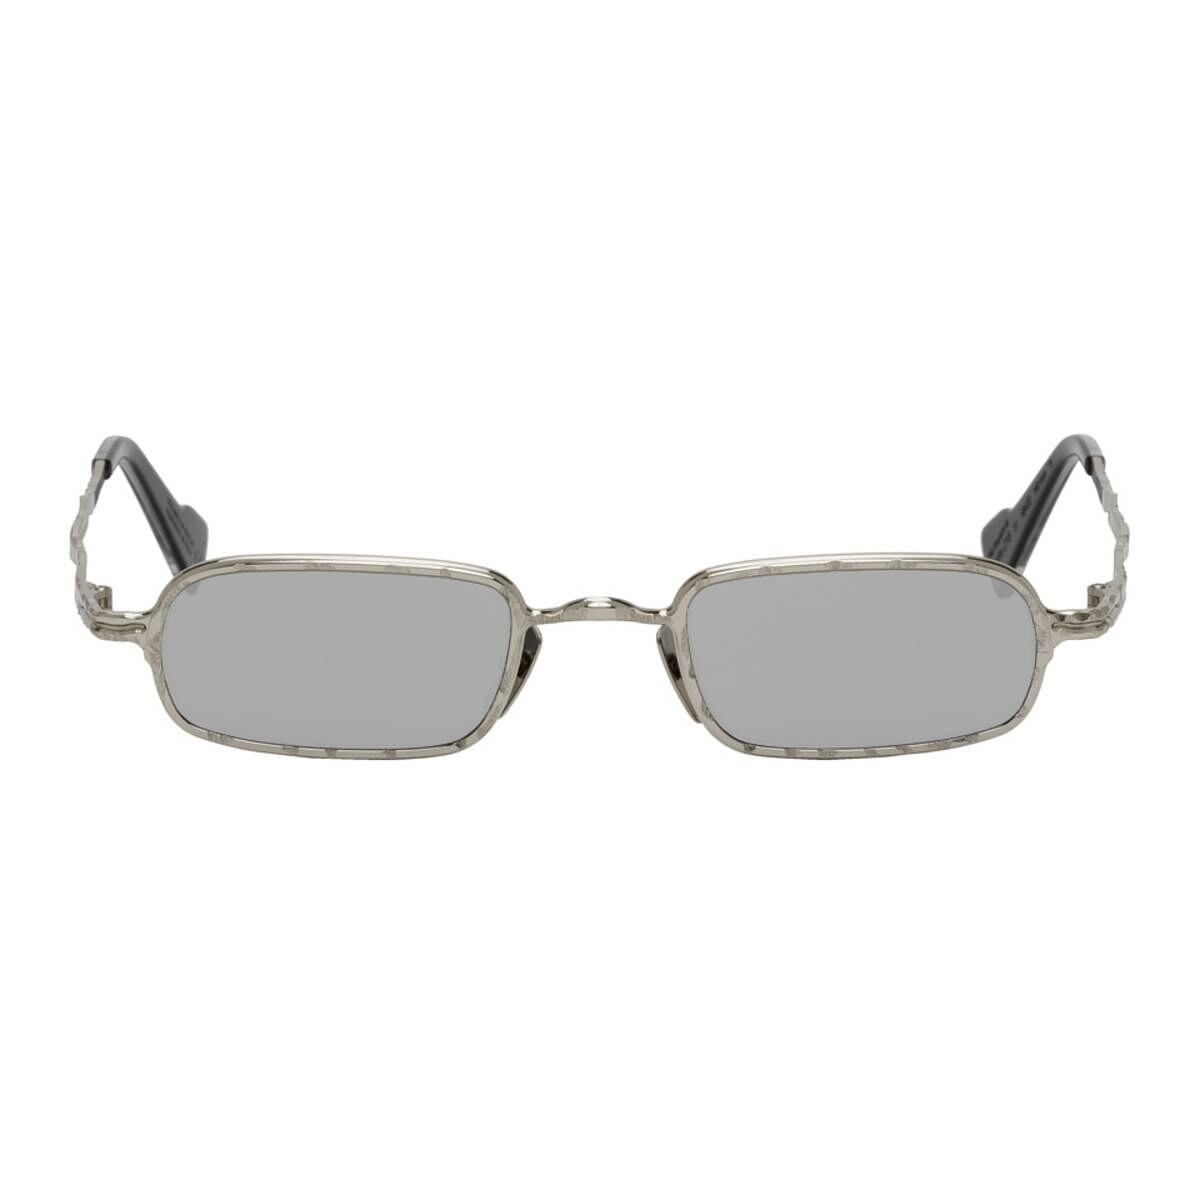 Kuboraum Silver Maske Z18 Sunglasses Ssense USA MEN Men ACCESSORIES Mens SUNGLASSES